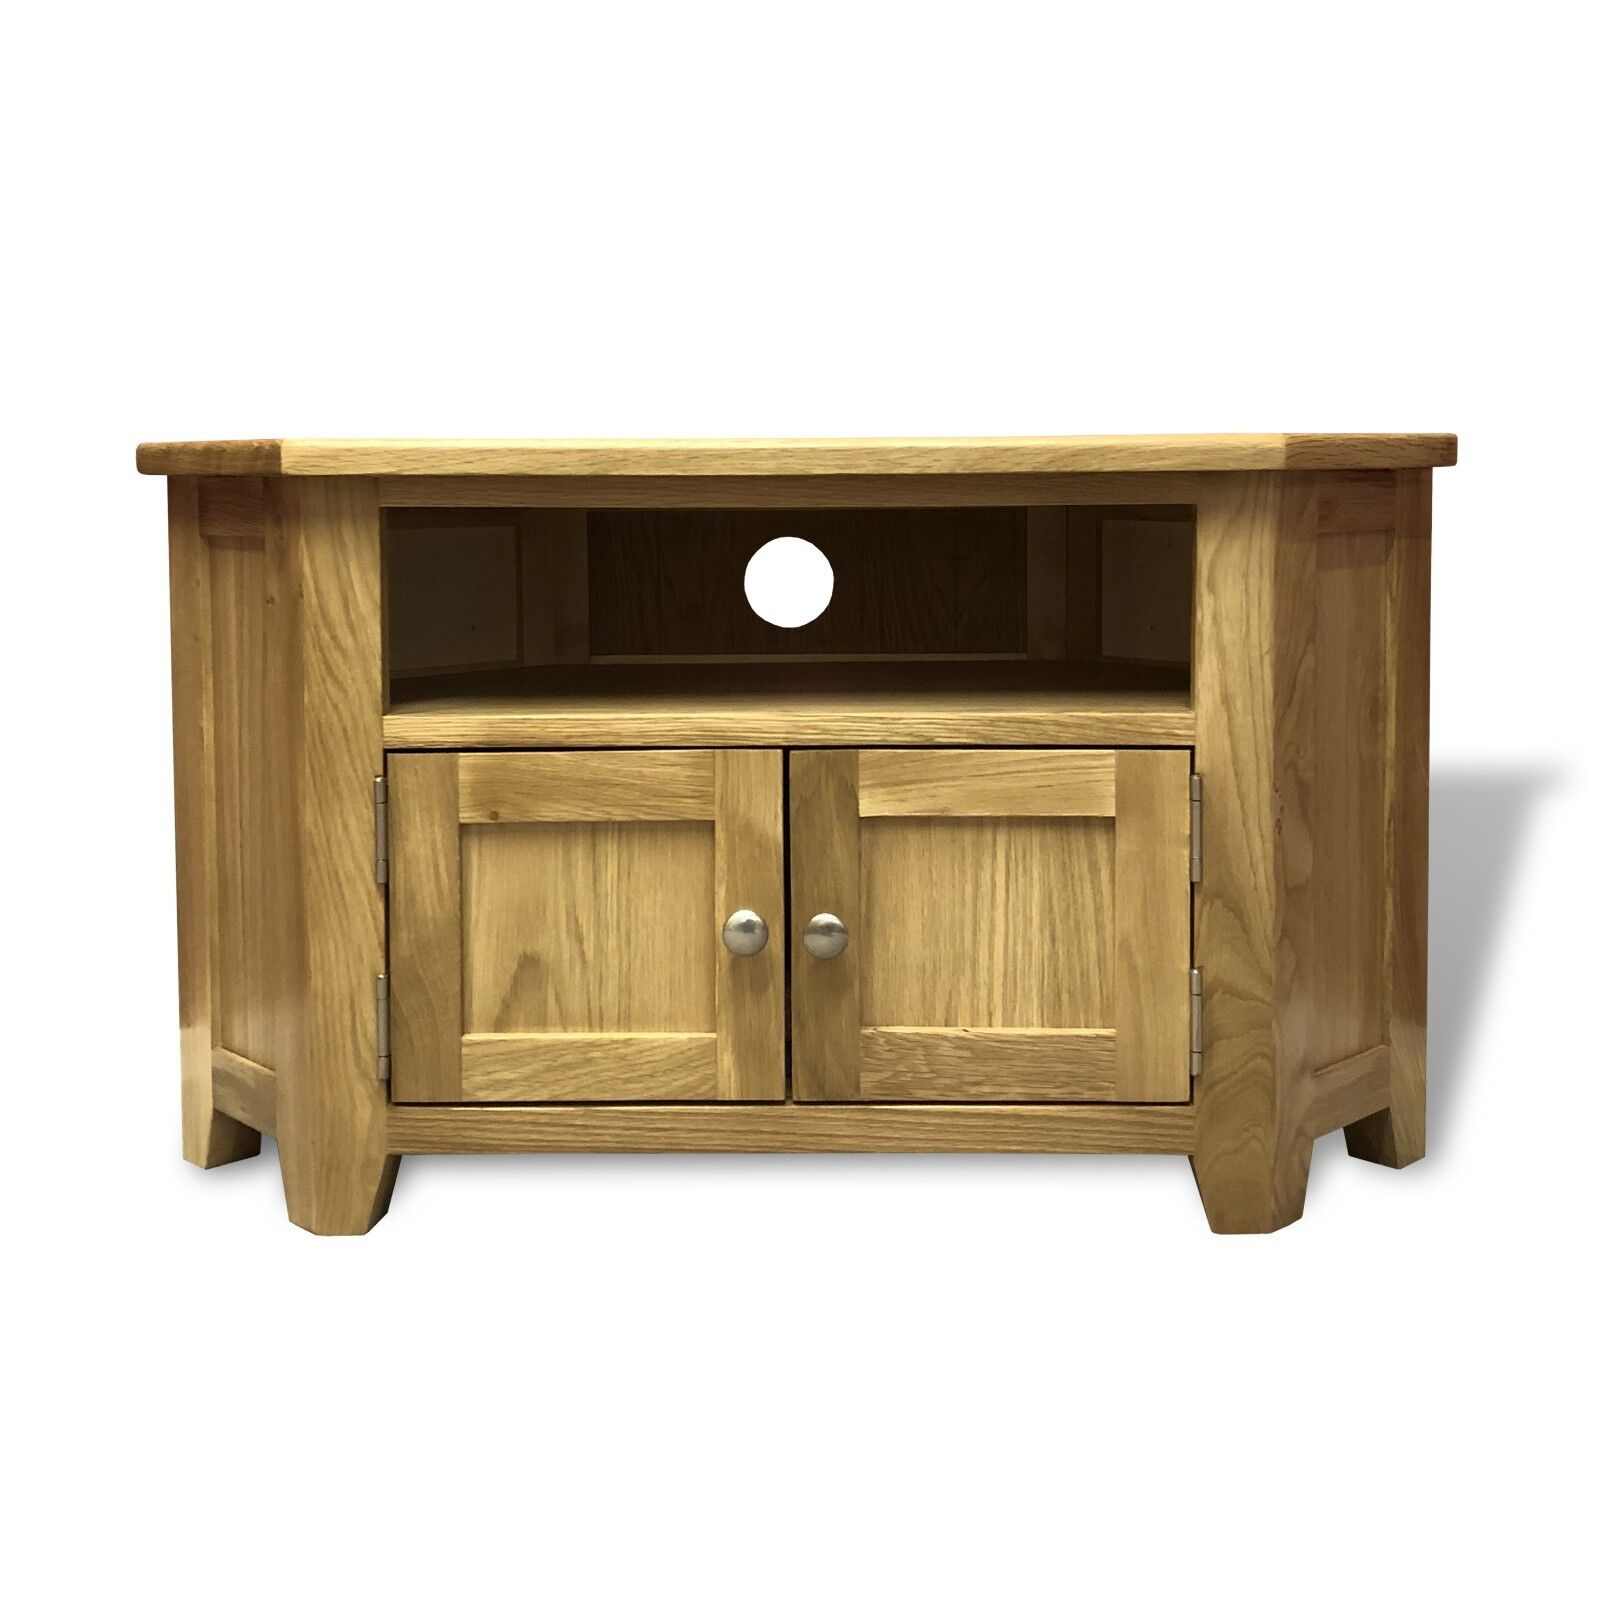 Oak Corner TV Stand With Doors / Solid Wood Television